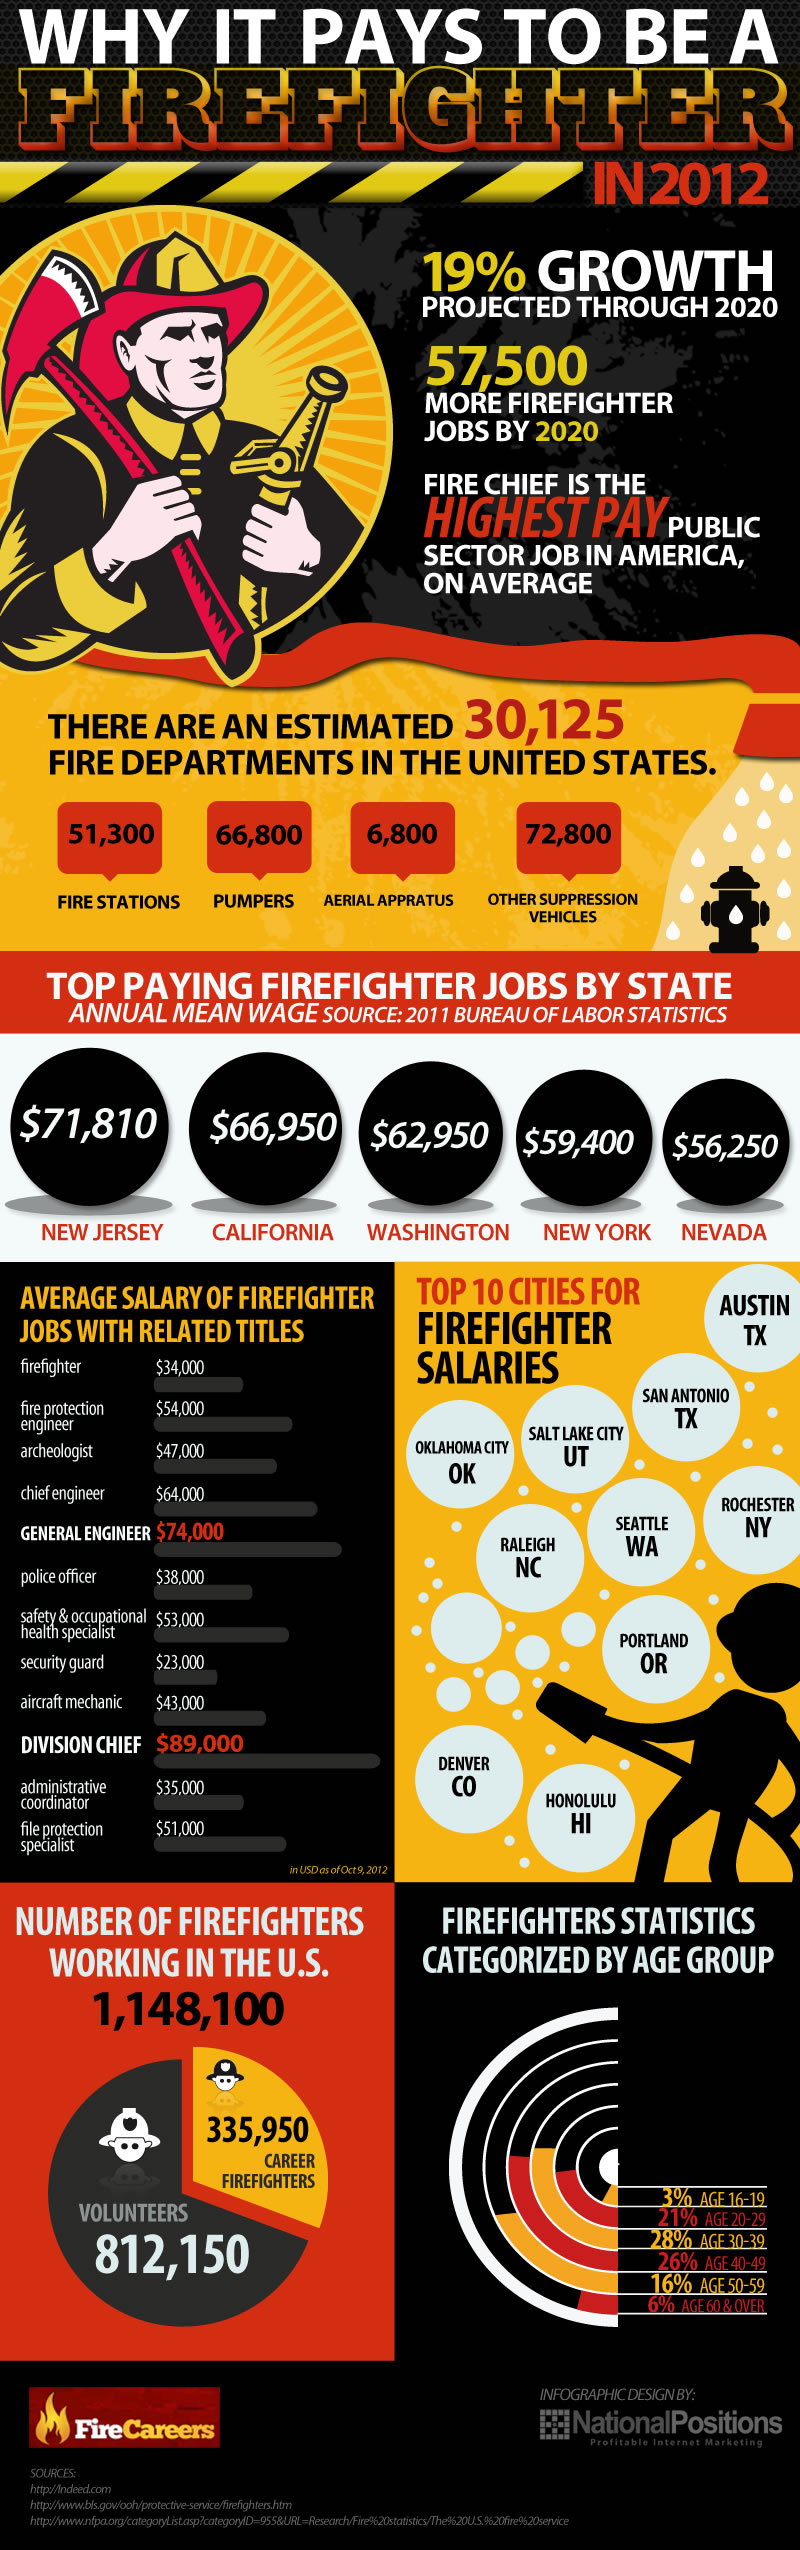 Why it pays to be a firefighter in the year 2012